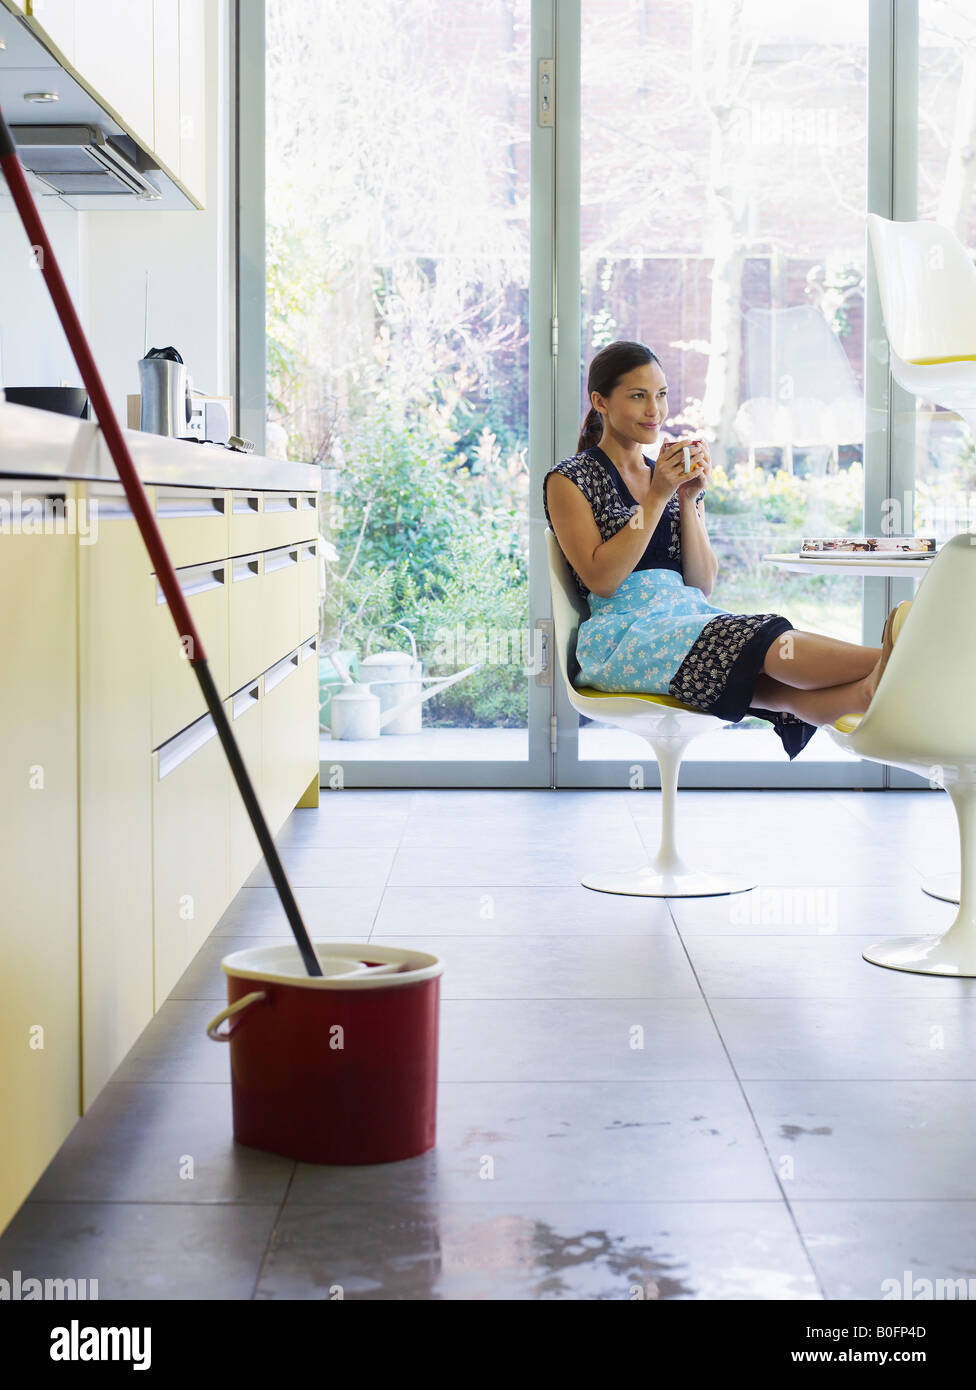 Young woman relaxing, mop in foreground - Stock Image